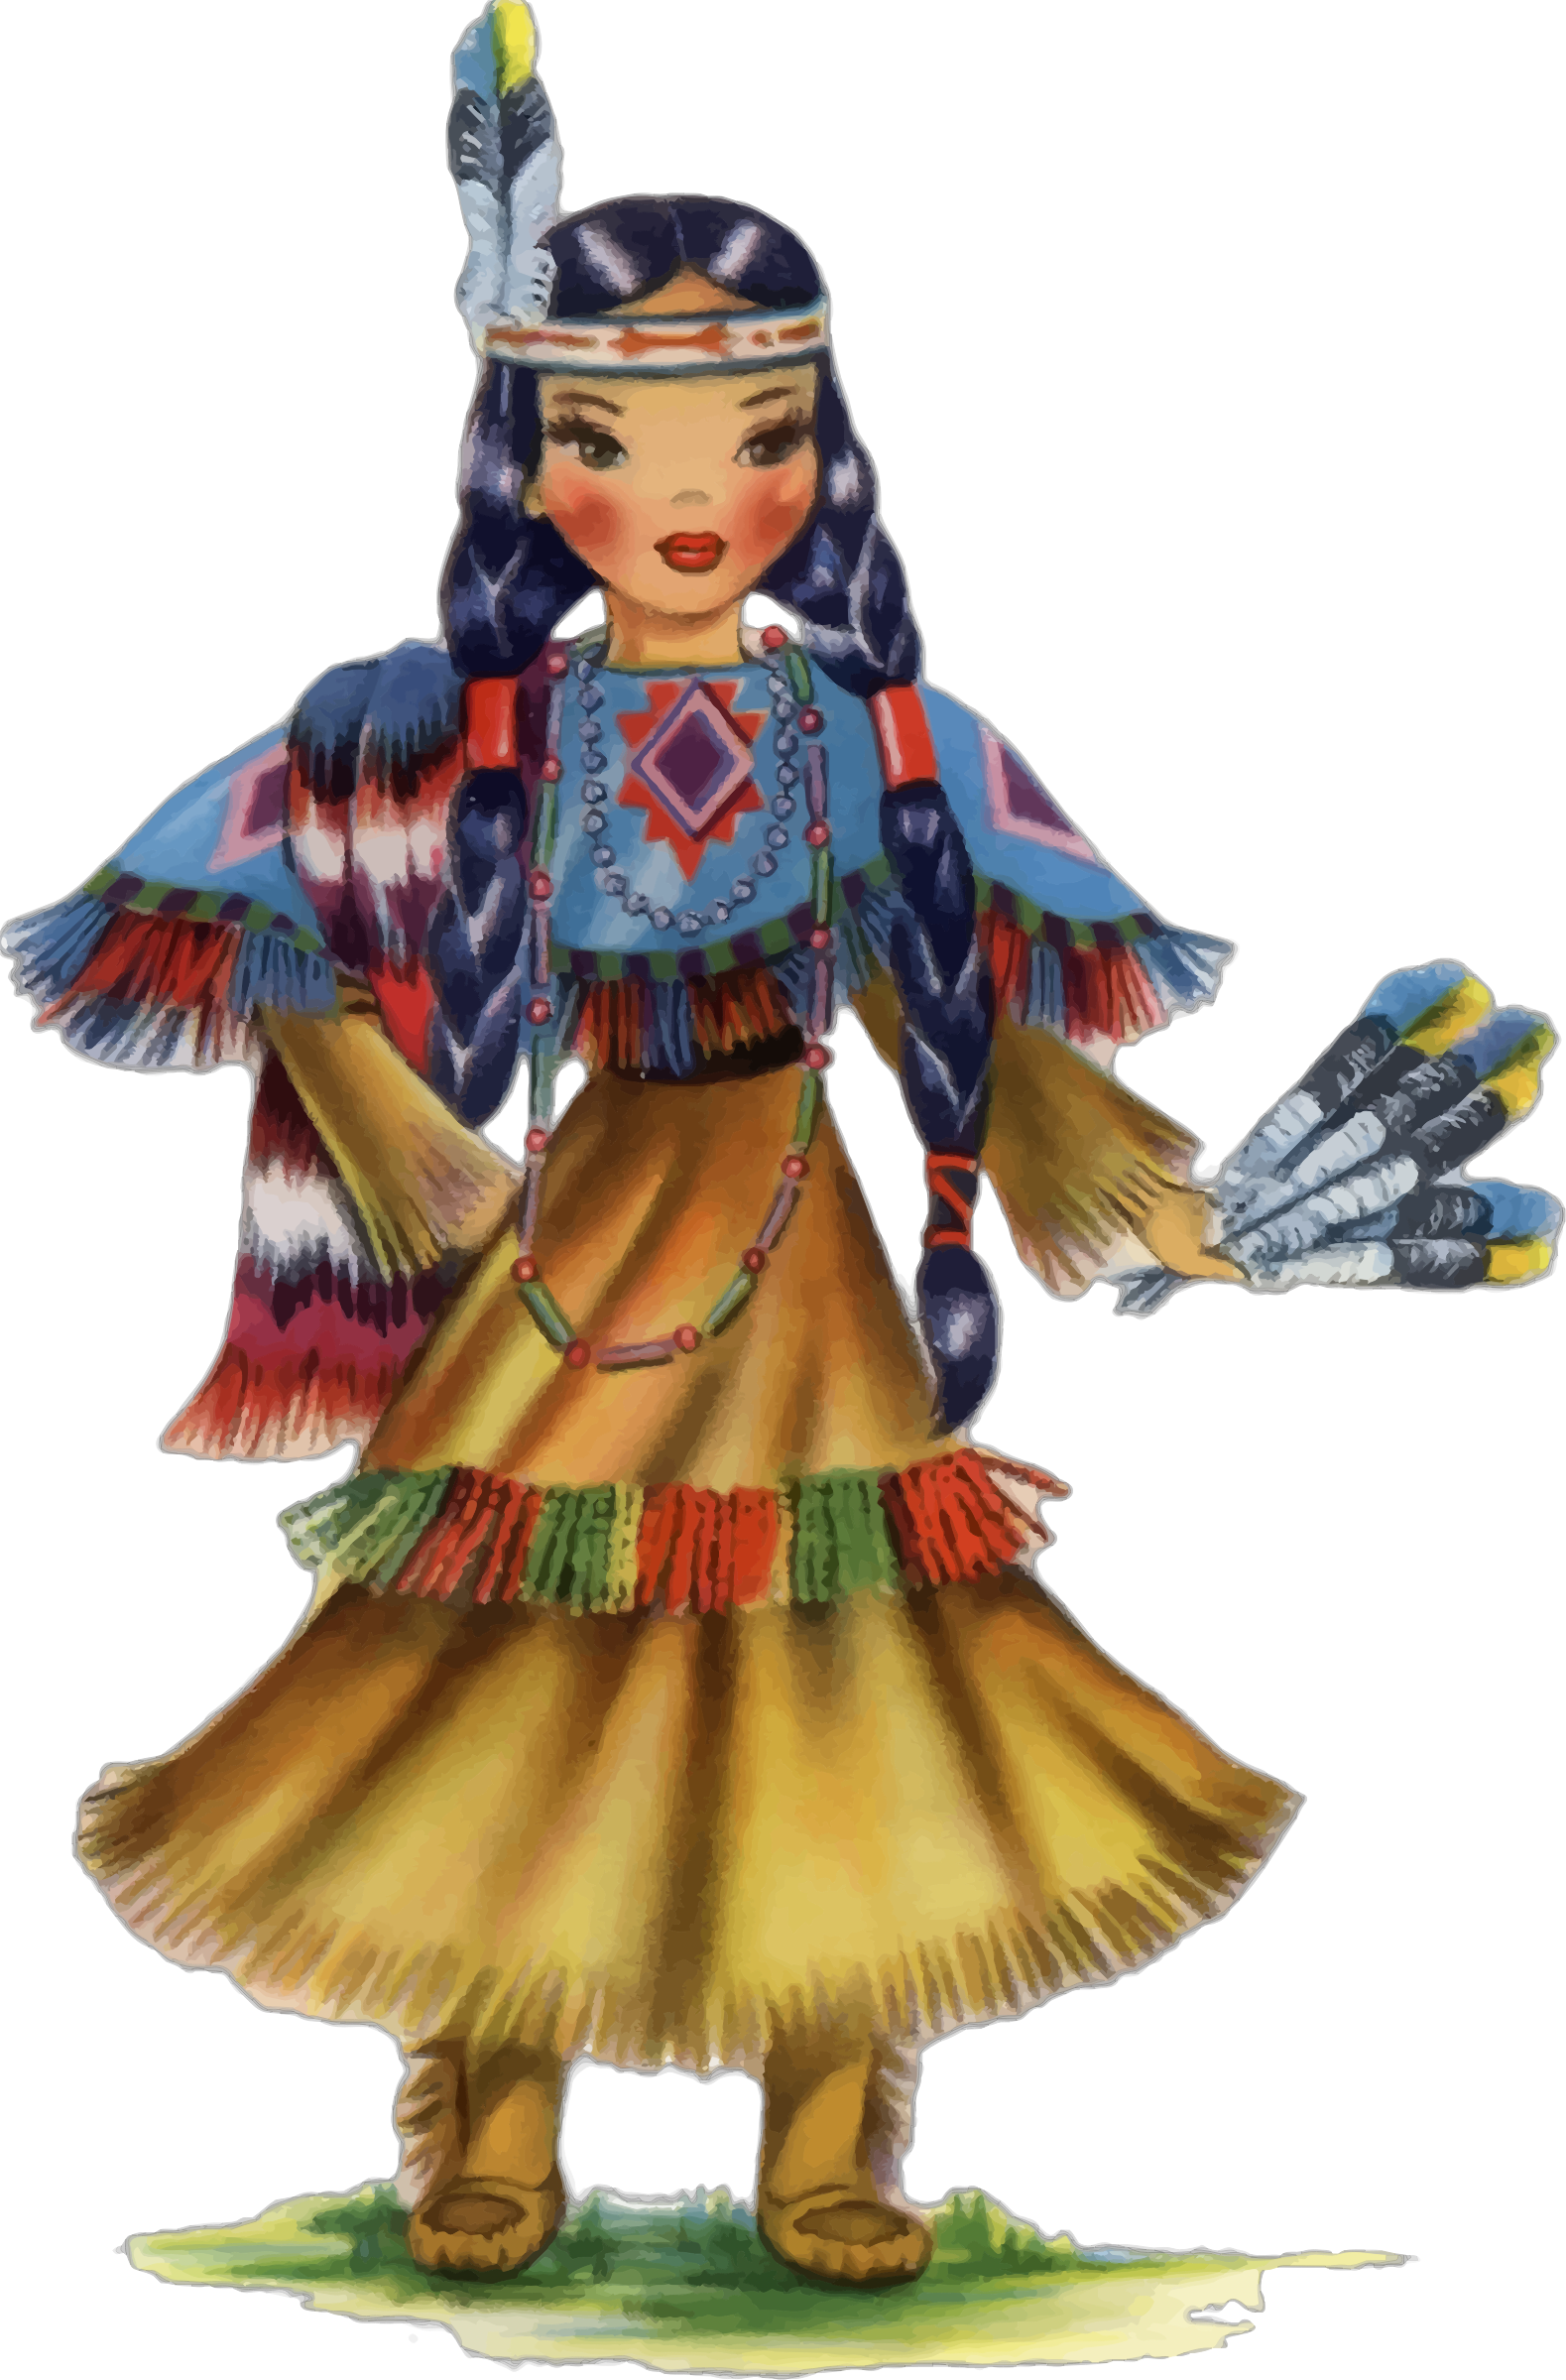 Vintage Native American Doll by GDJ